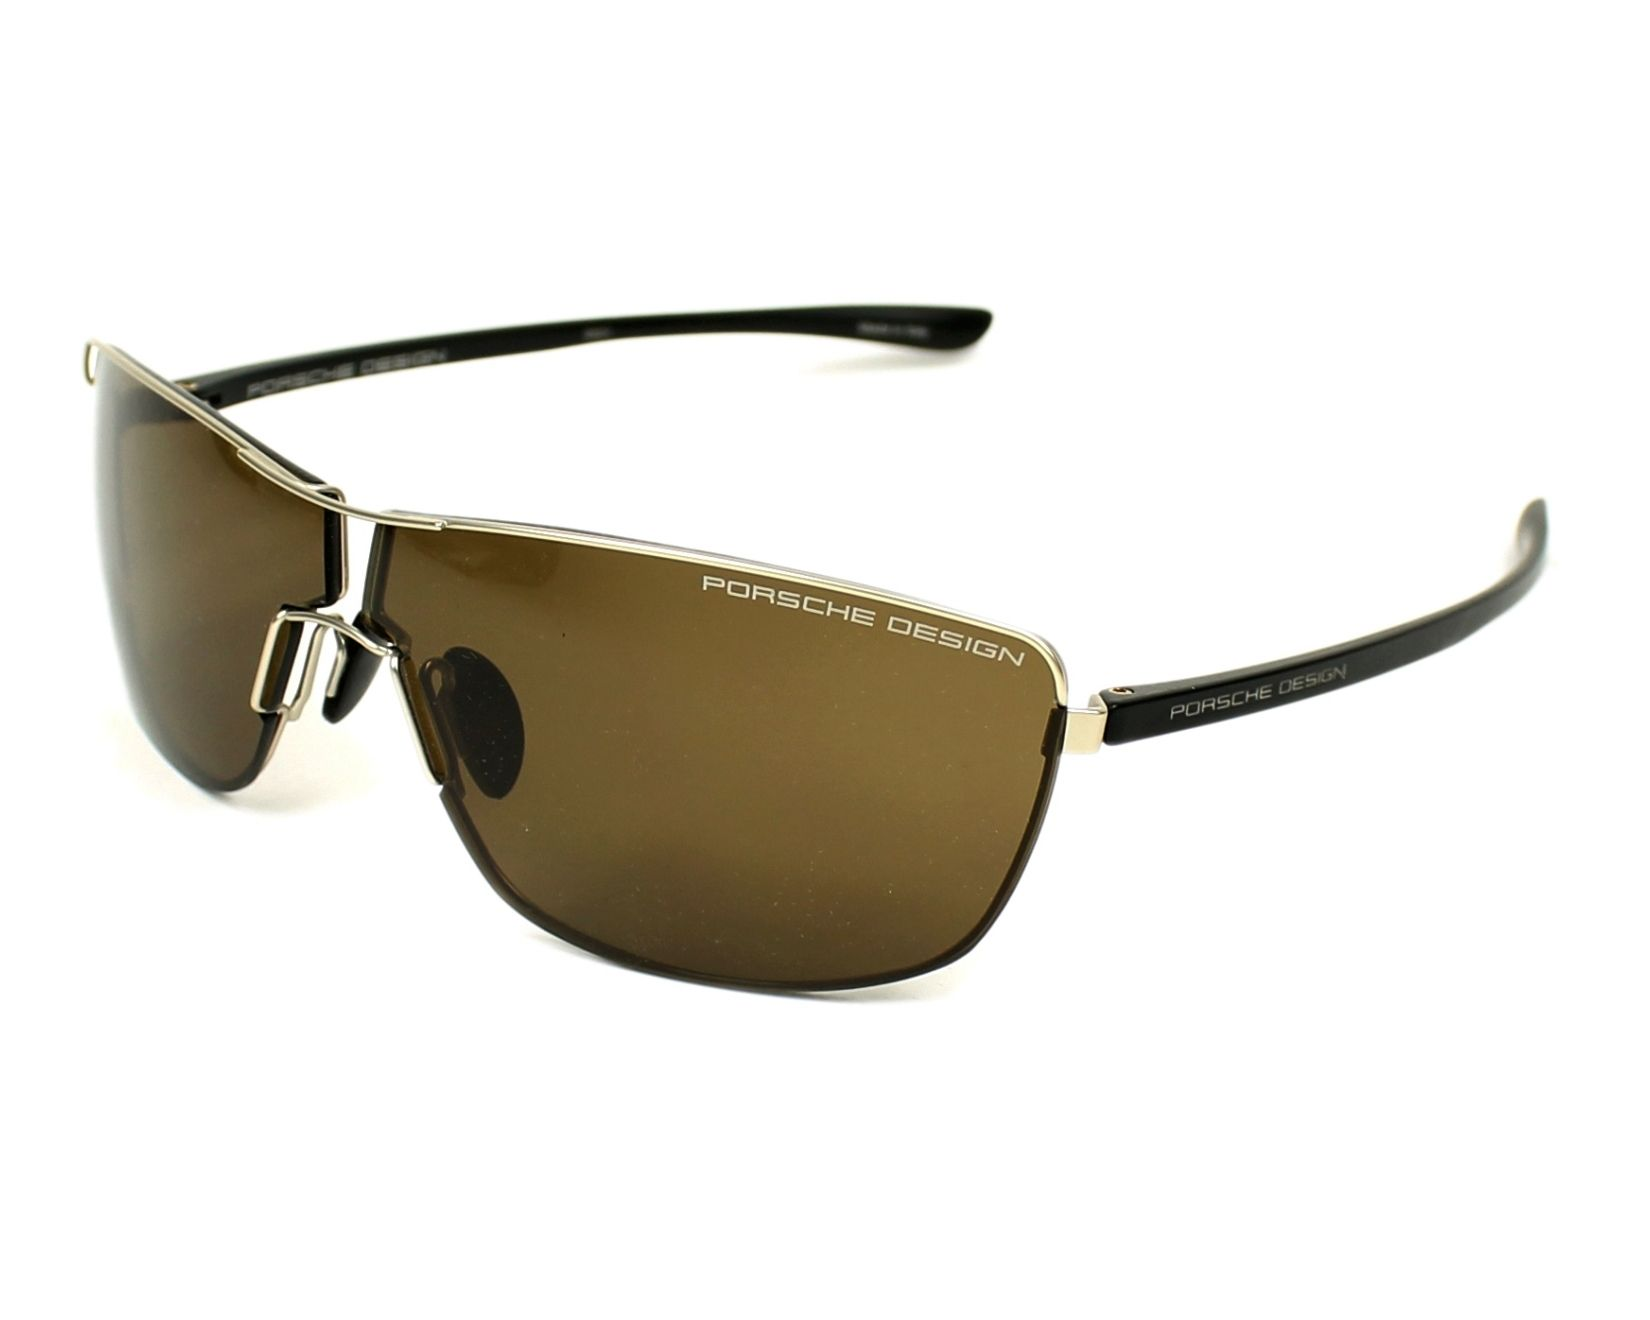 Porsche Design Sunglasses Black with Brown Lenses P-8616 B ...